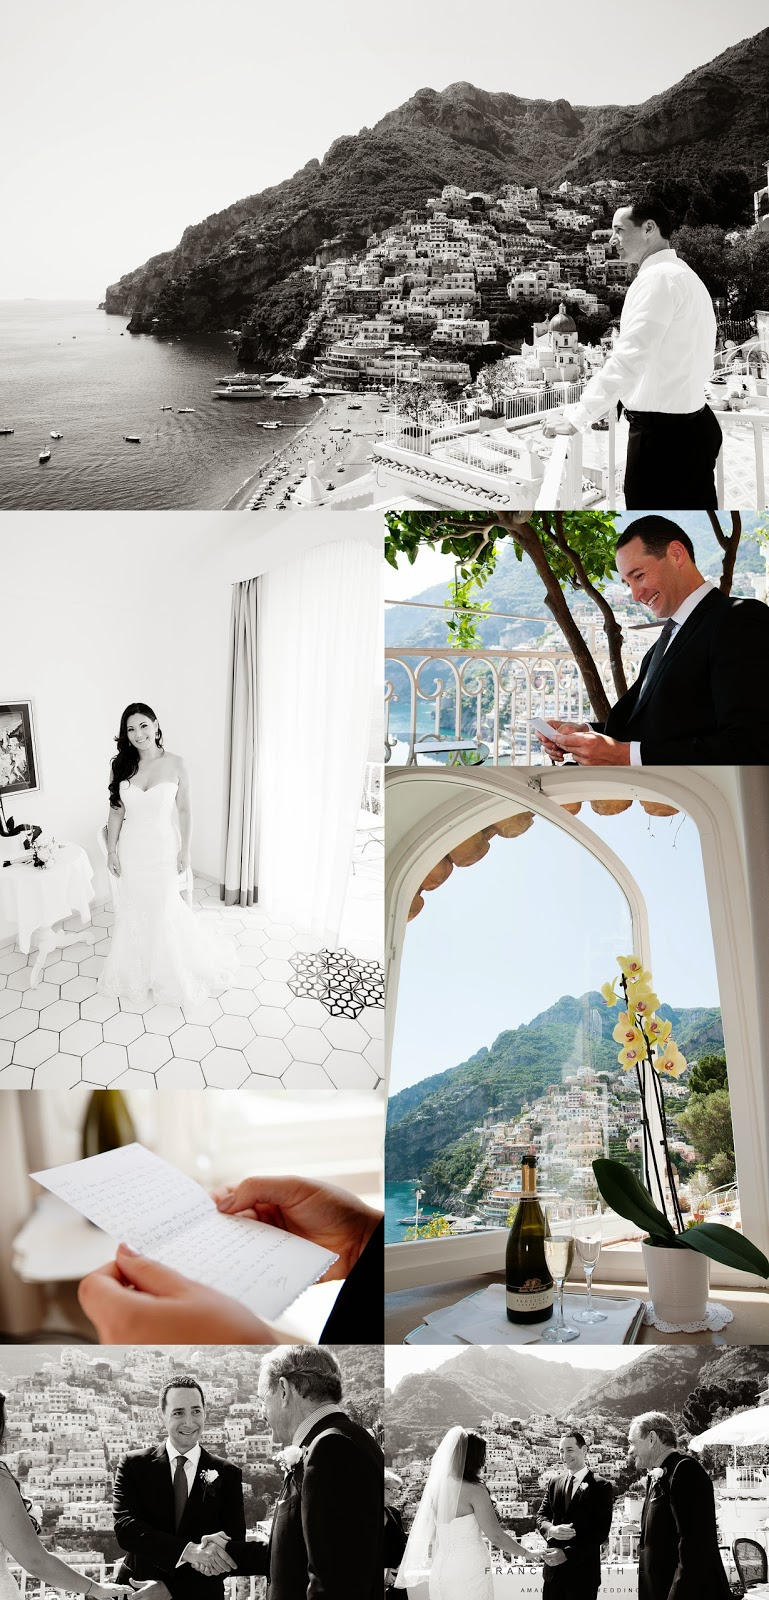 Bride and groom getting ready at Hotel Marincanto